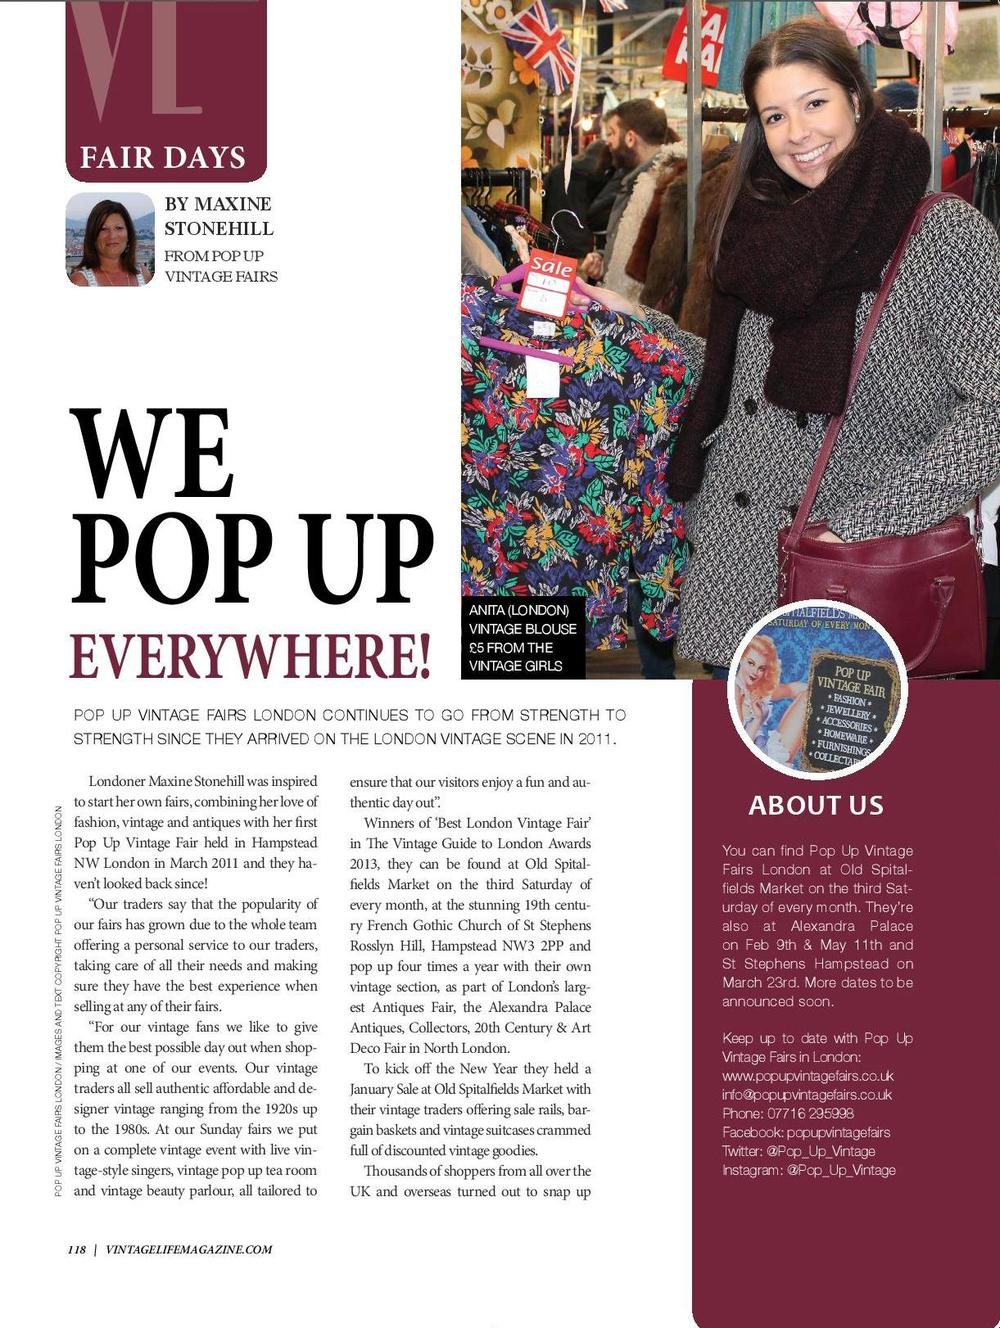 Vintage Life feature Feb 2014 page 1.jpg